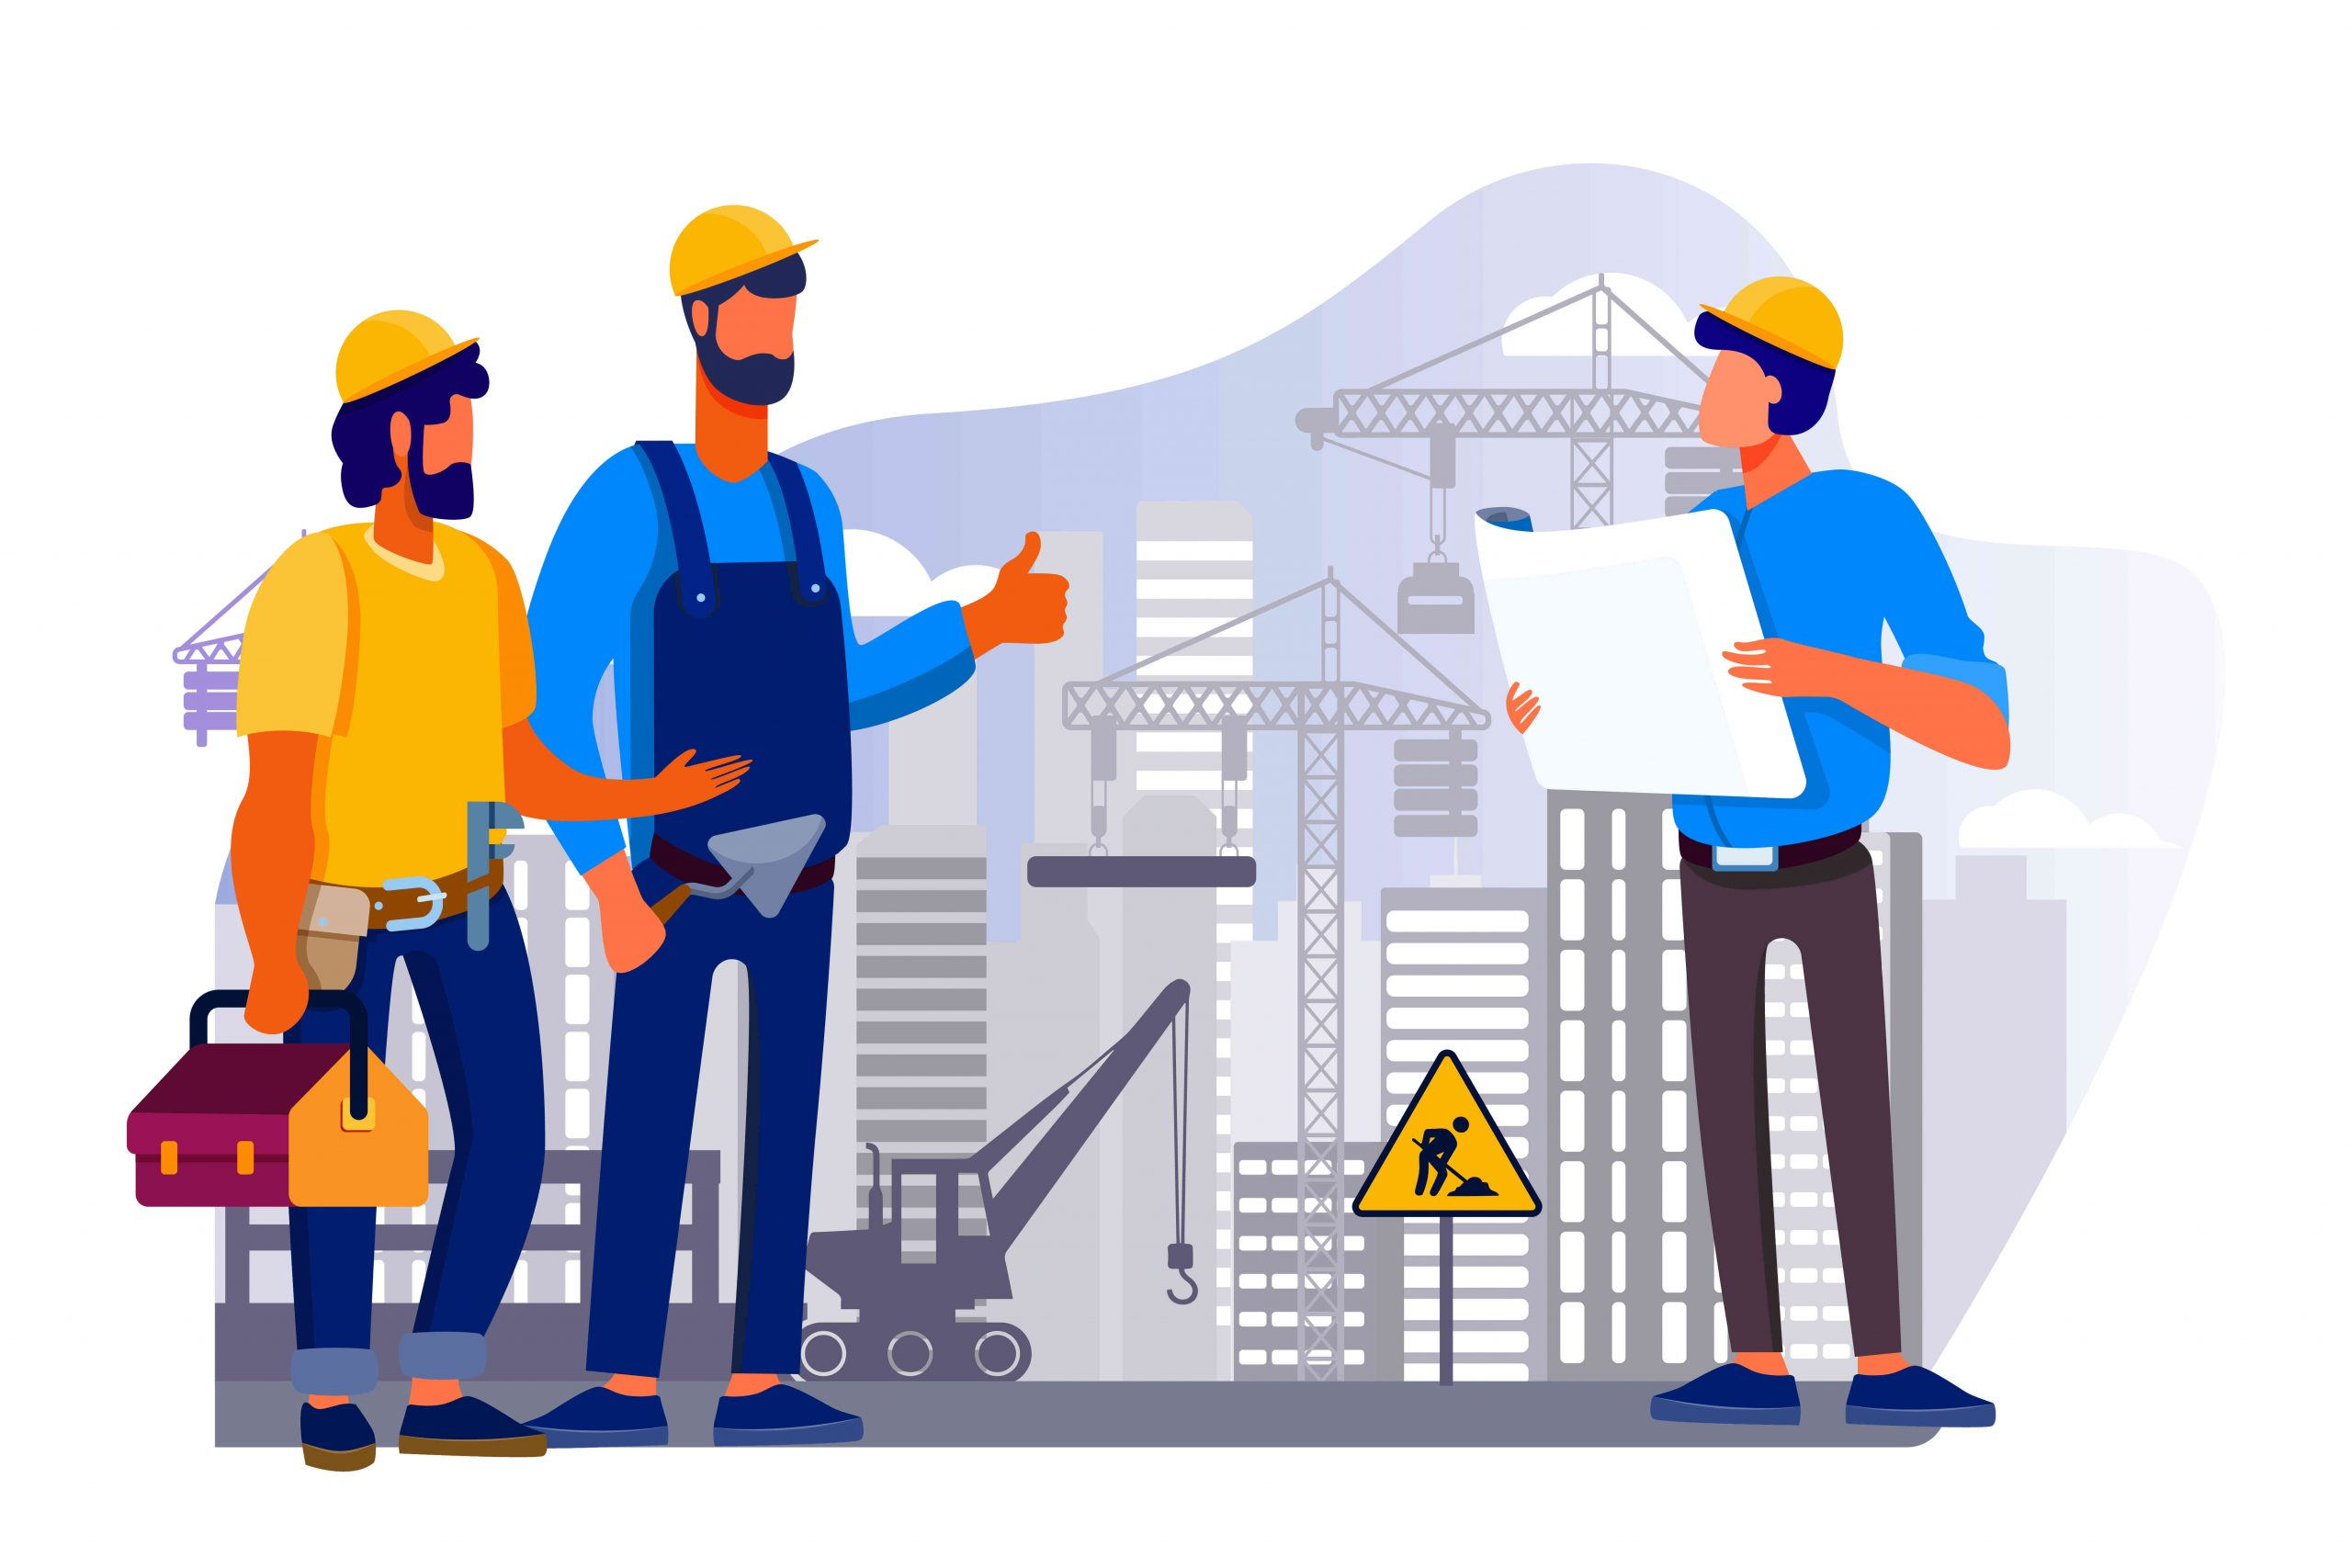 CONTRACTOR'S ALL RISKS INSURANCE - vector image of contractor and labours